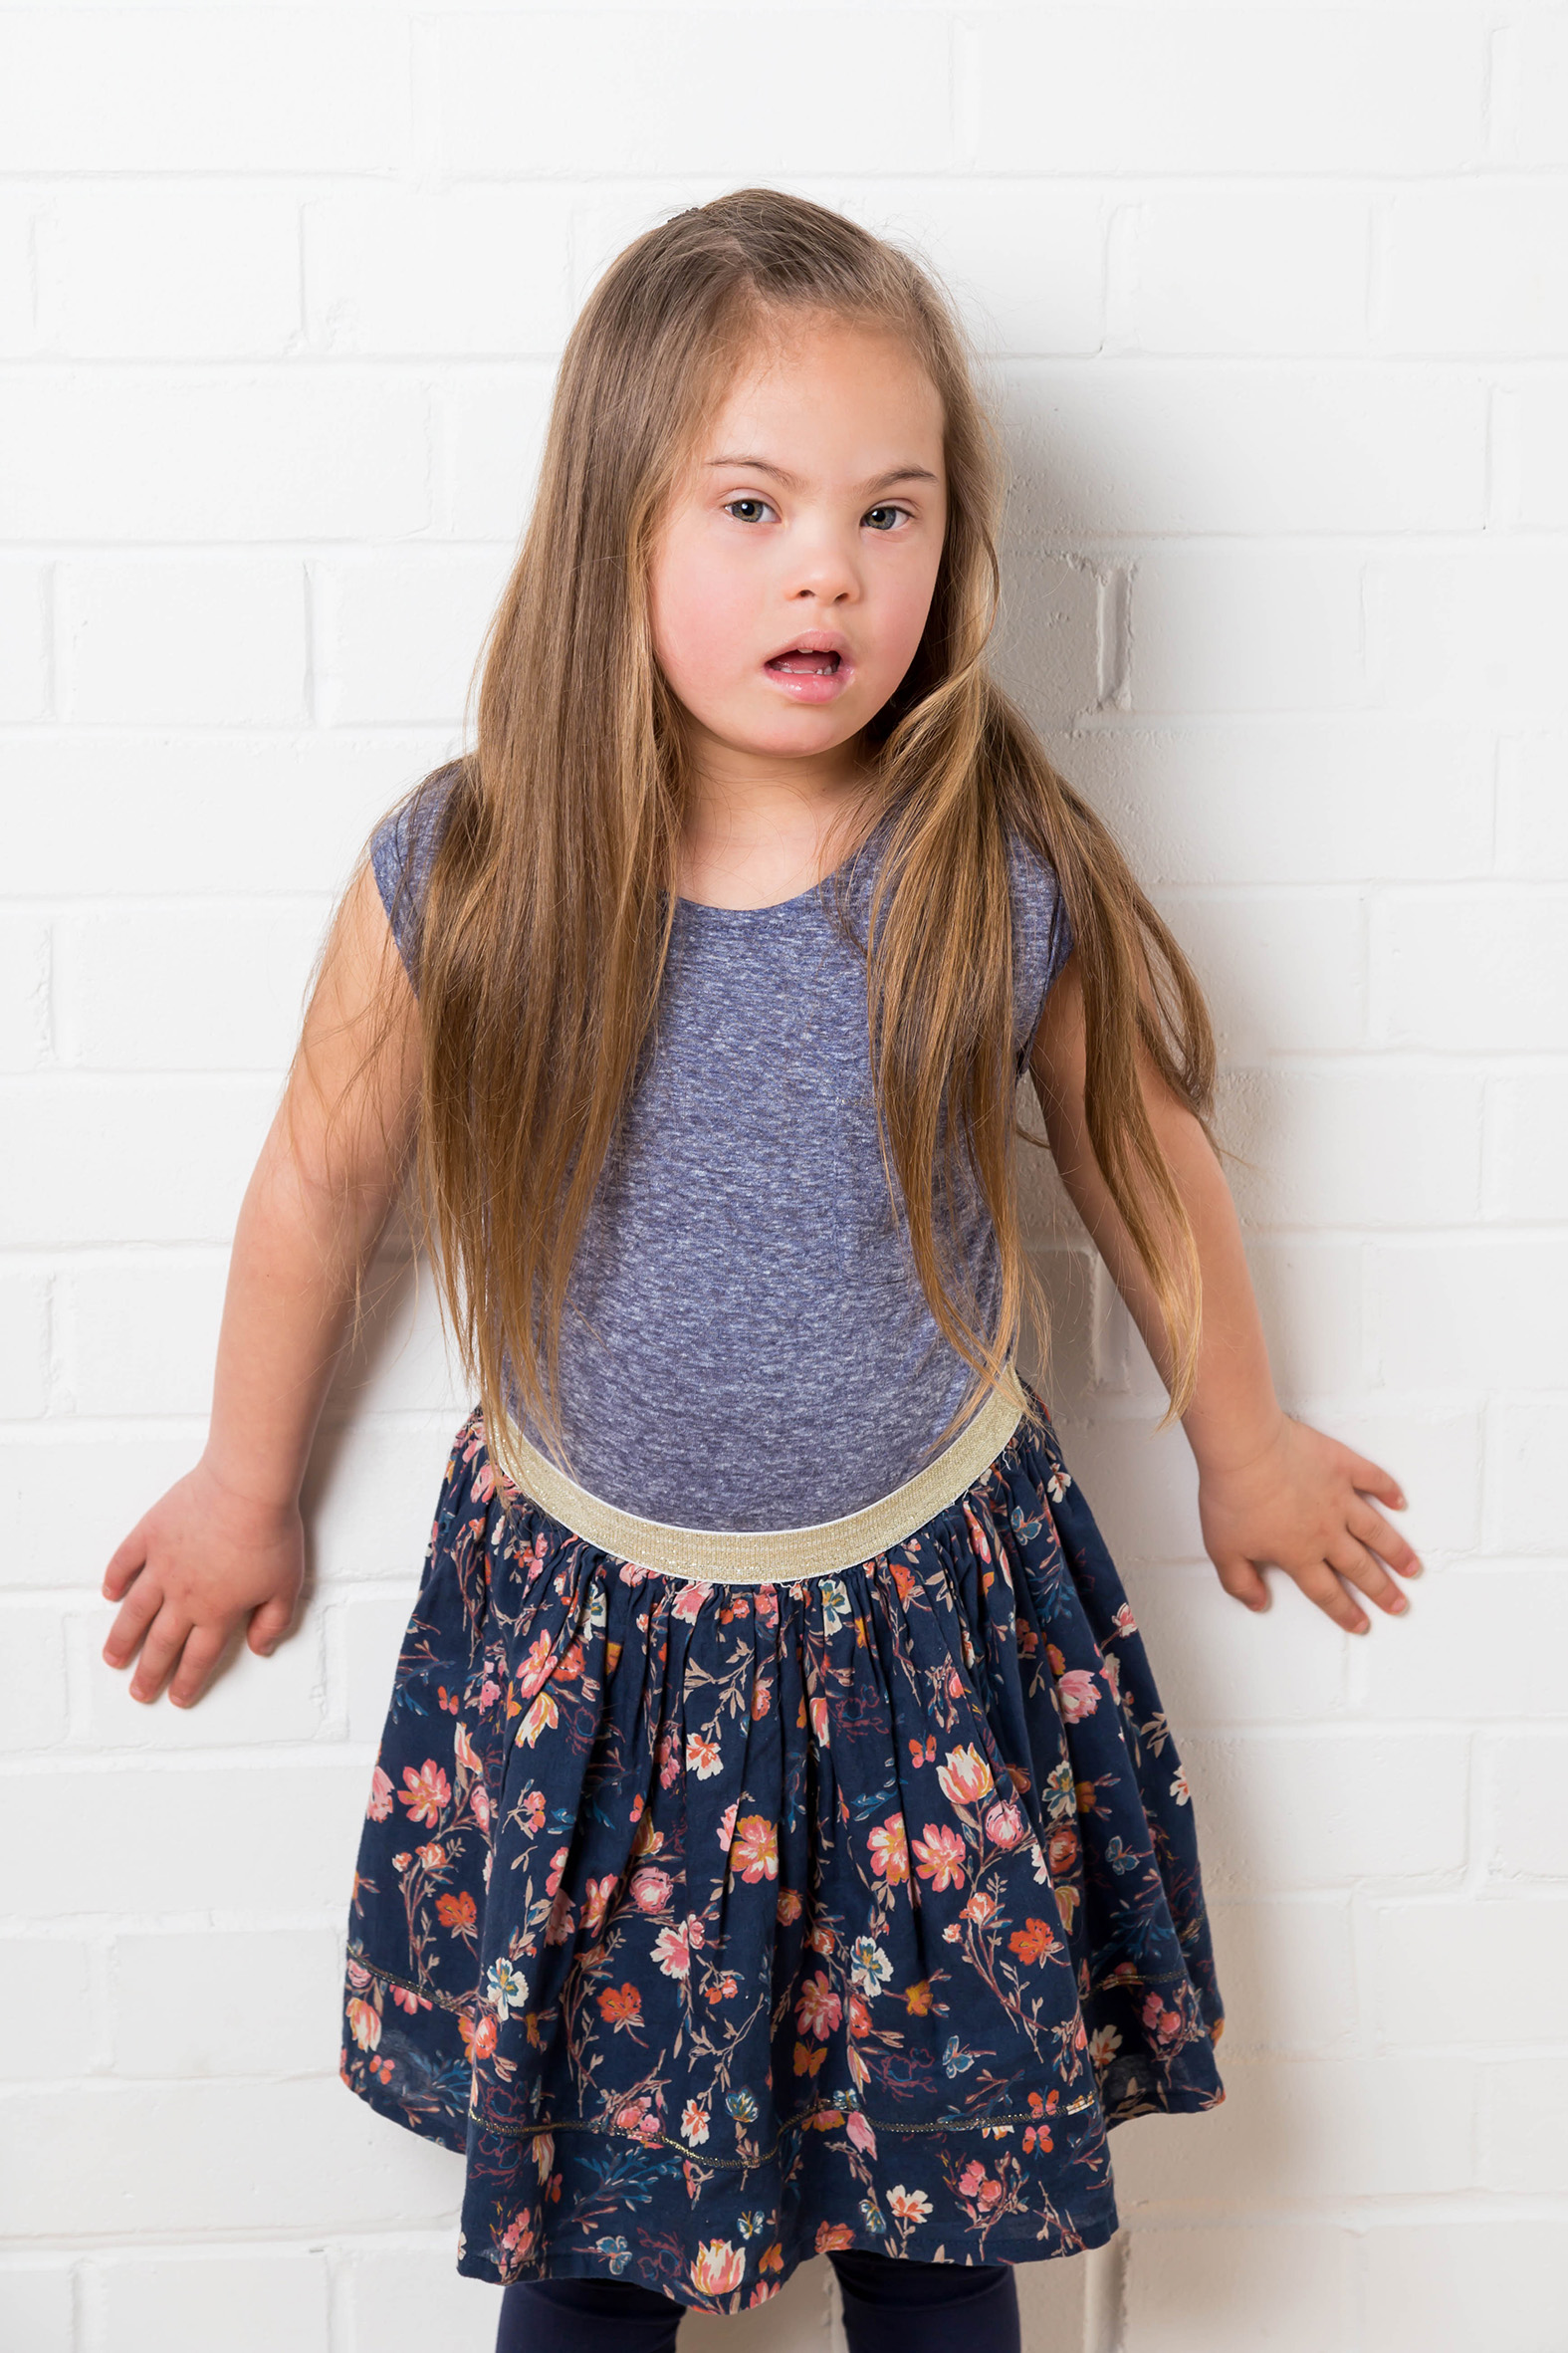 Maia, Down Syndrome model, Zebedee Management, disabled, model agency, disability, girl 06